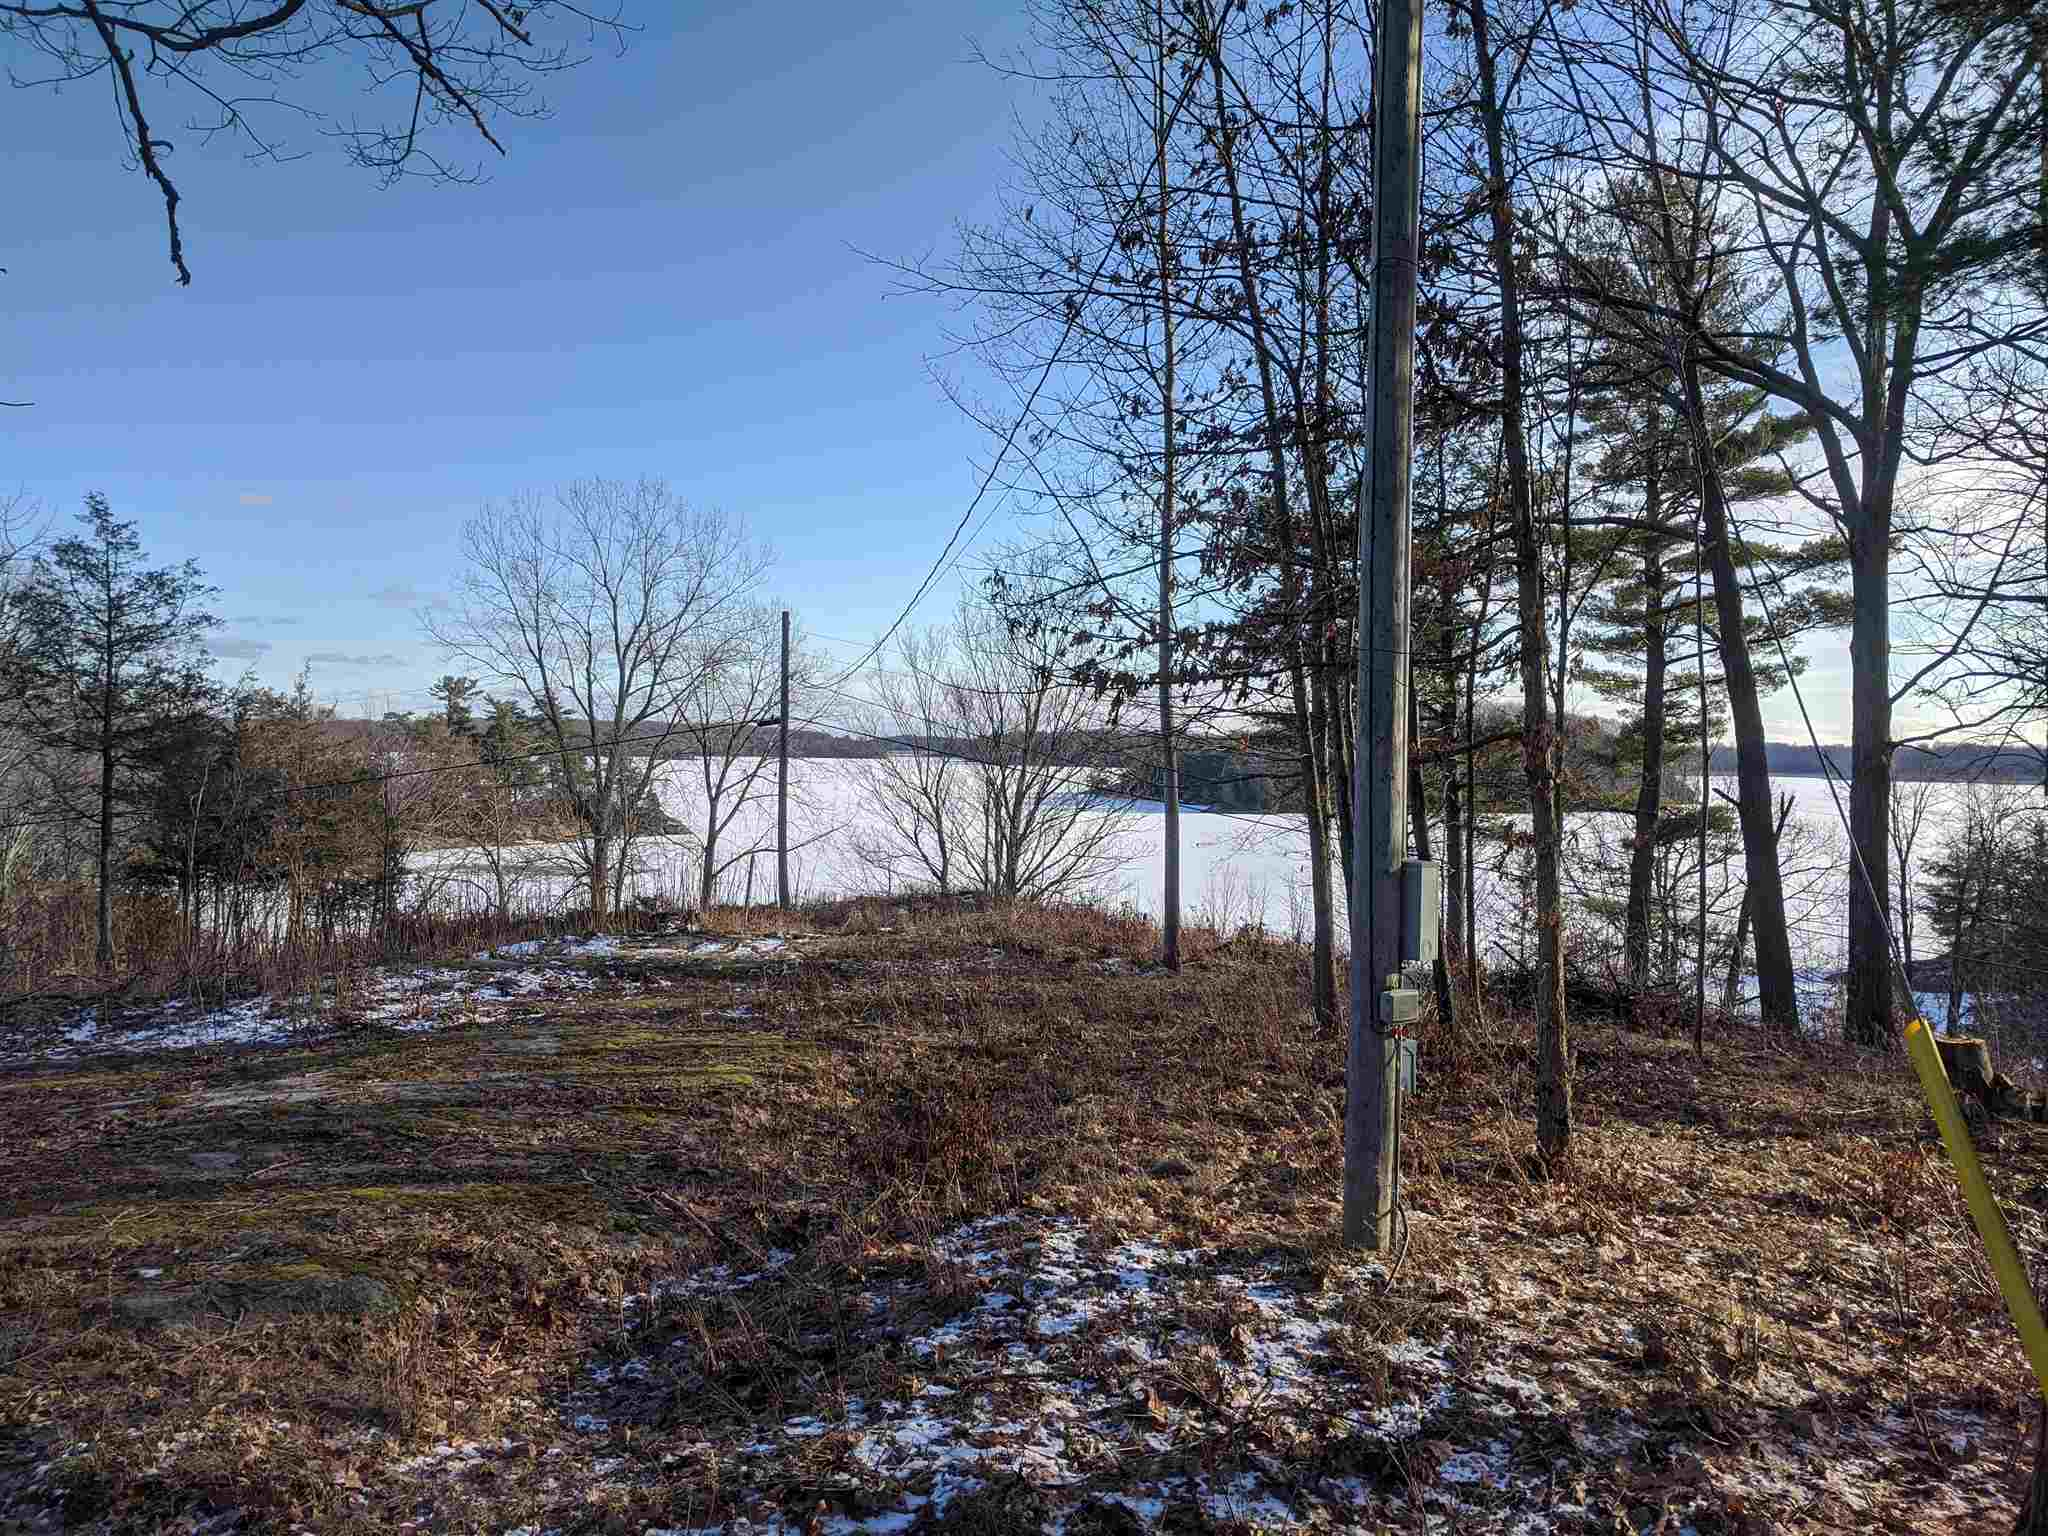 835 Gan Lake Lane, Leeds & 1000 Islands Township Ontario, Canada